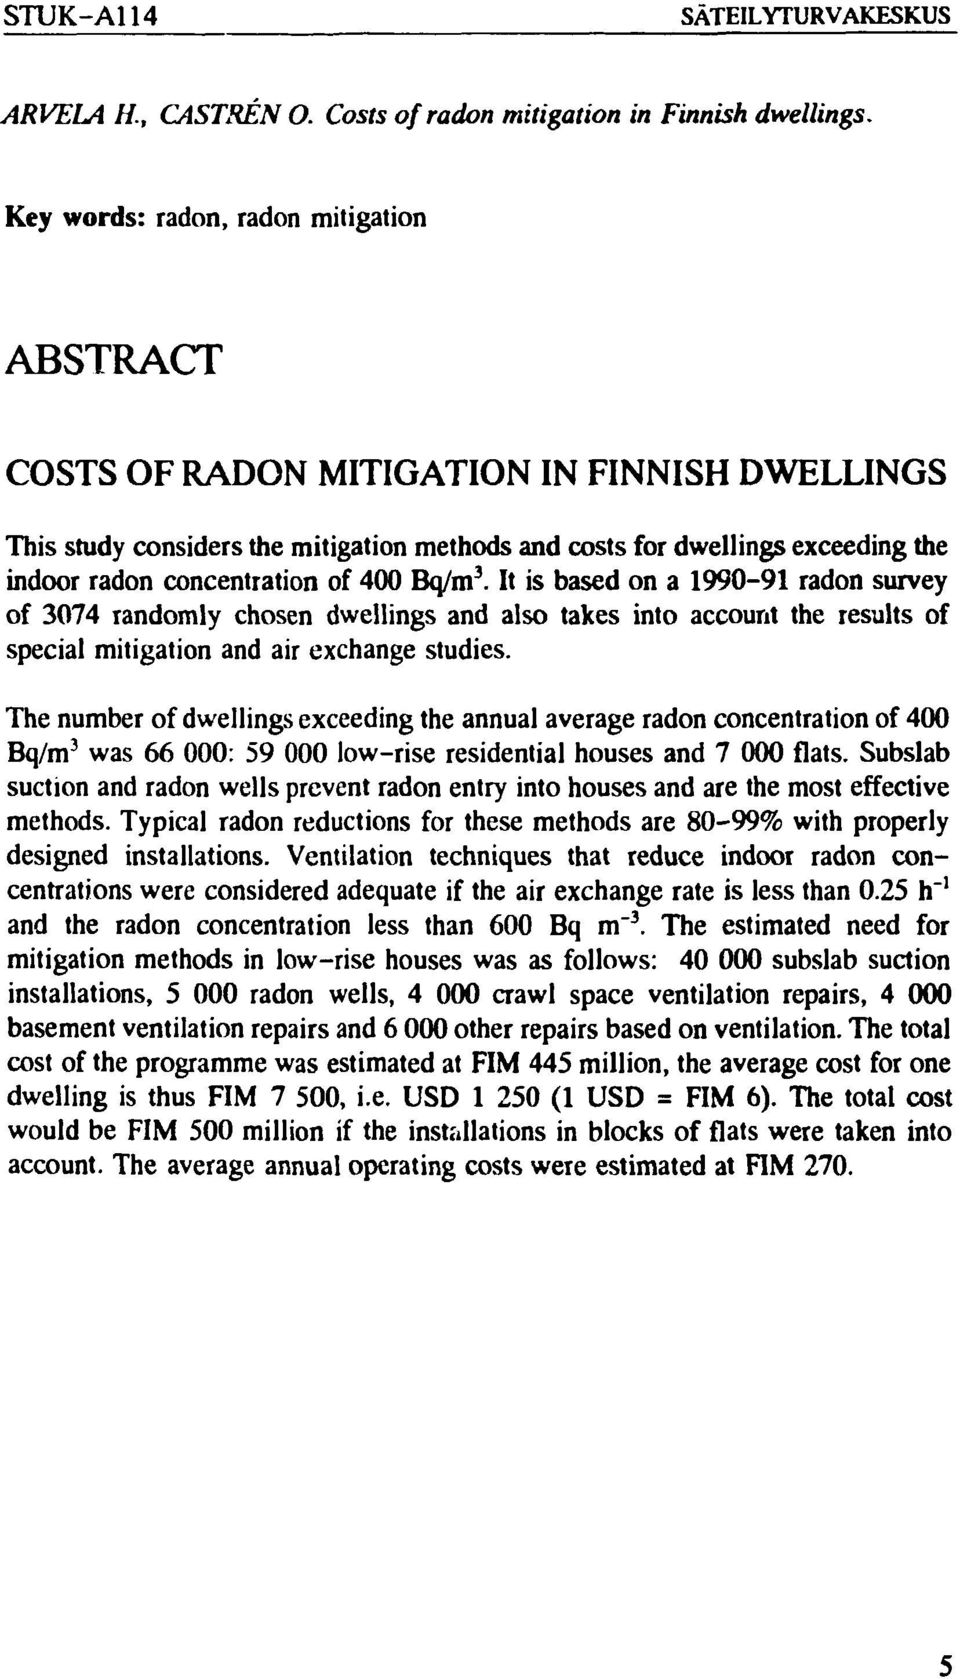 of 400 Bq/m 3. It is based on a 1990-91 radon survey of 3074 randomly chosen dwellings and also takes into account the results of special mitigation and air exchange studies.